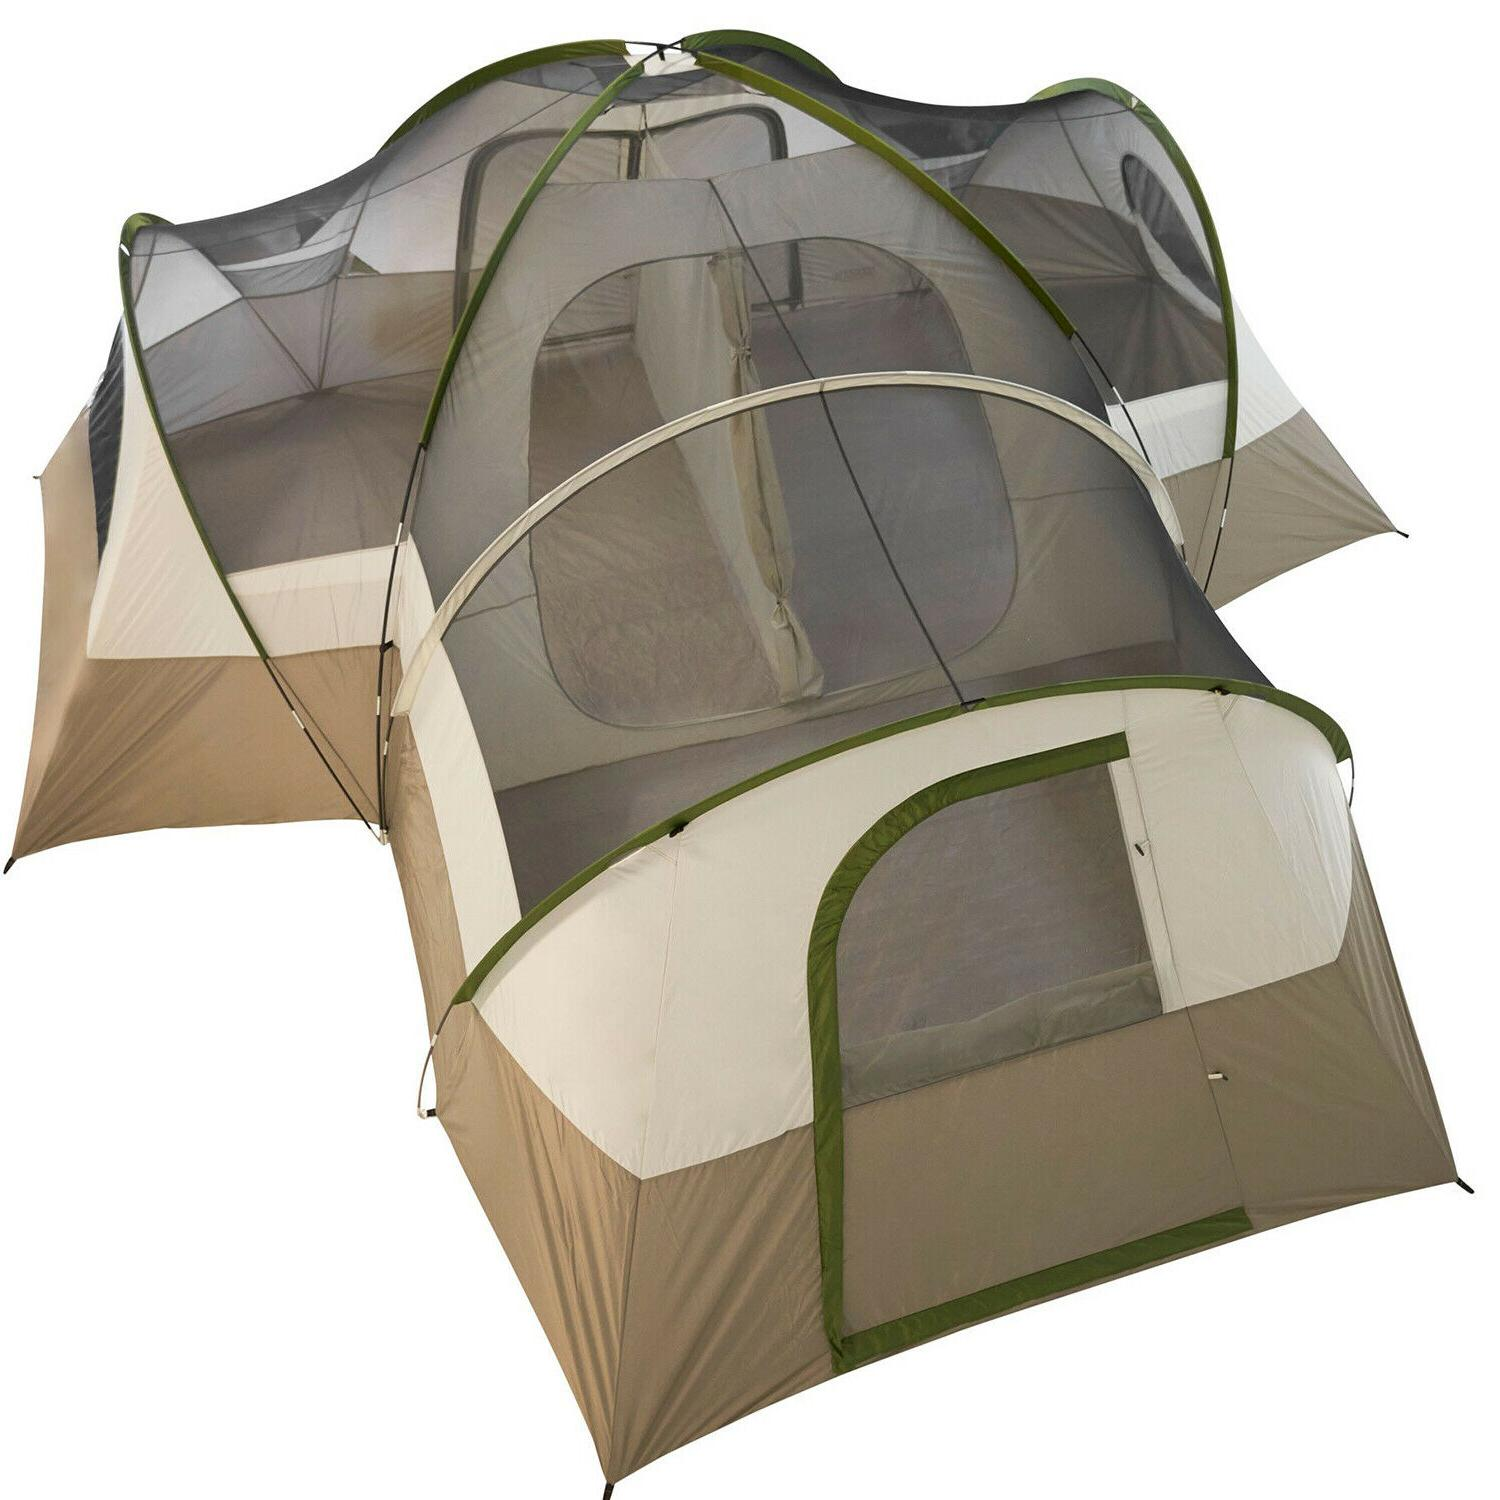 Large 16 Person Family Dome Camping Tent Outdoor Hiking Shel